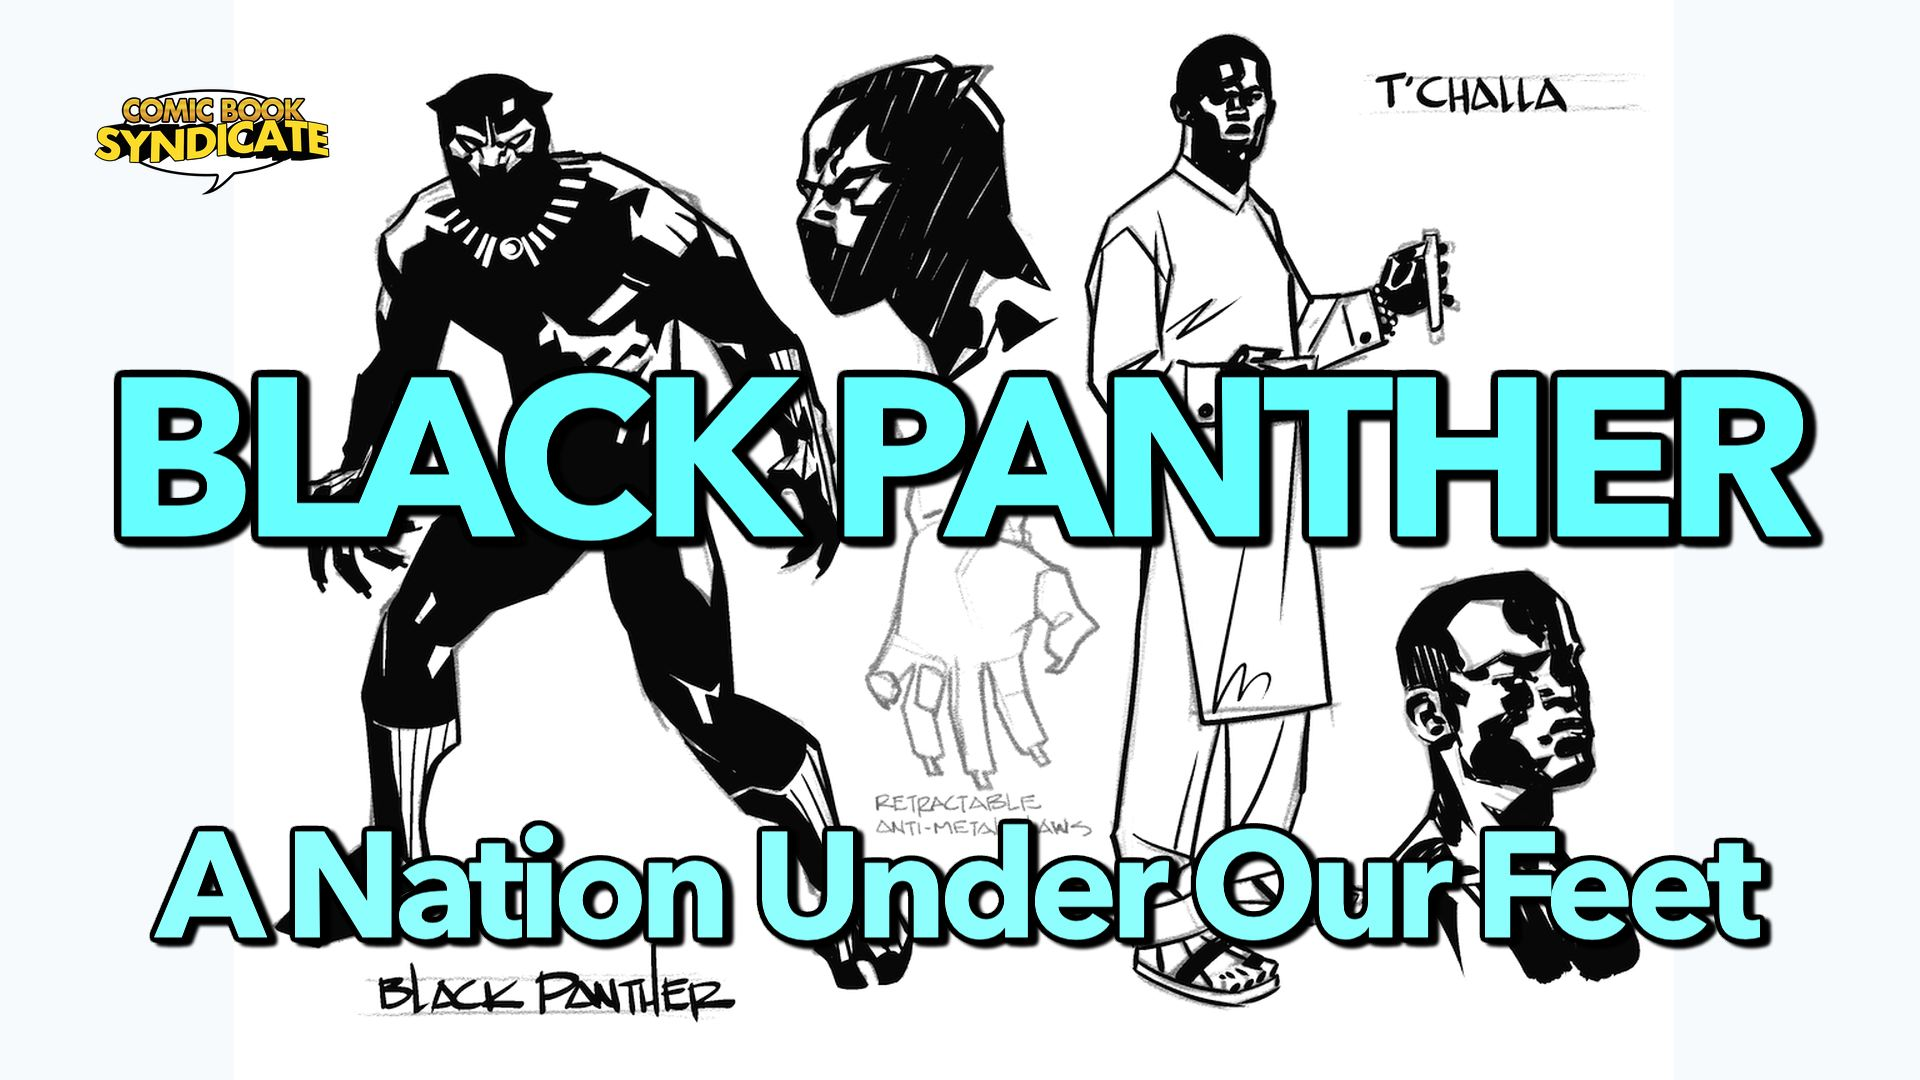 Black Panther - A Nation Under Our Feet